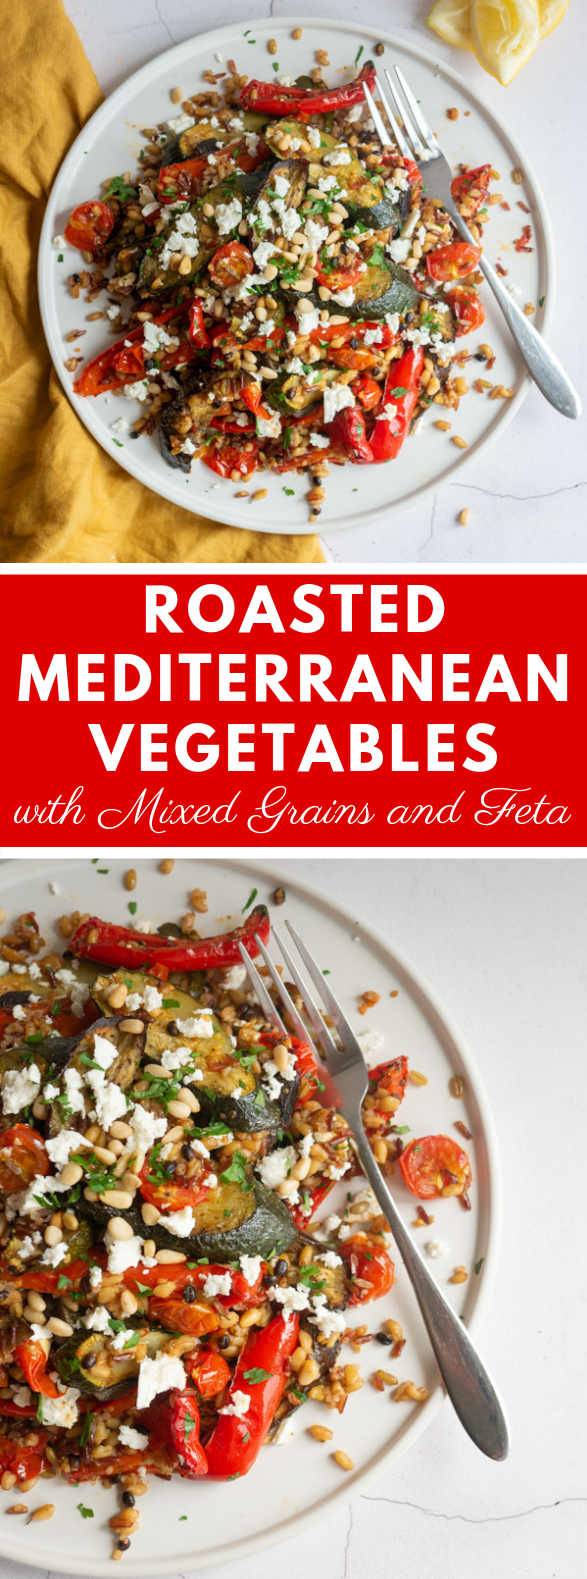 ROASTED MEDITERRANEAN VEGETABLES WITH MIXED GRAINS AND FETA #vegetarian #weeknightdinner